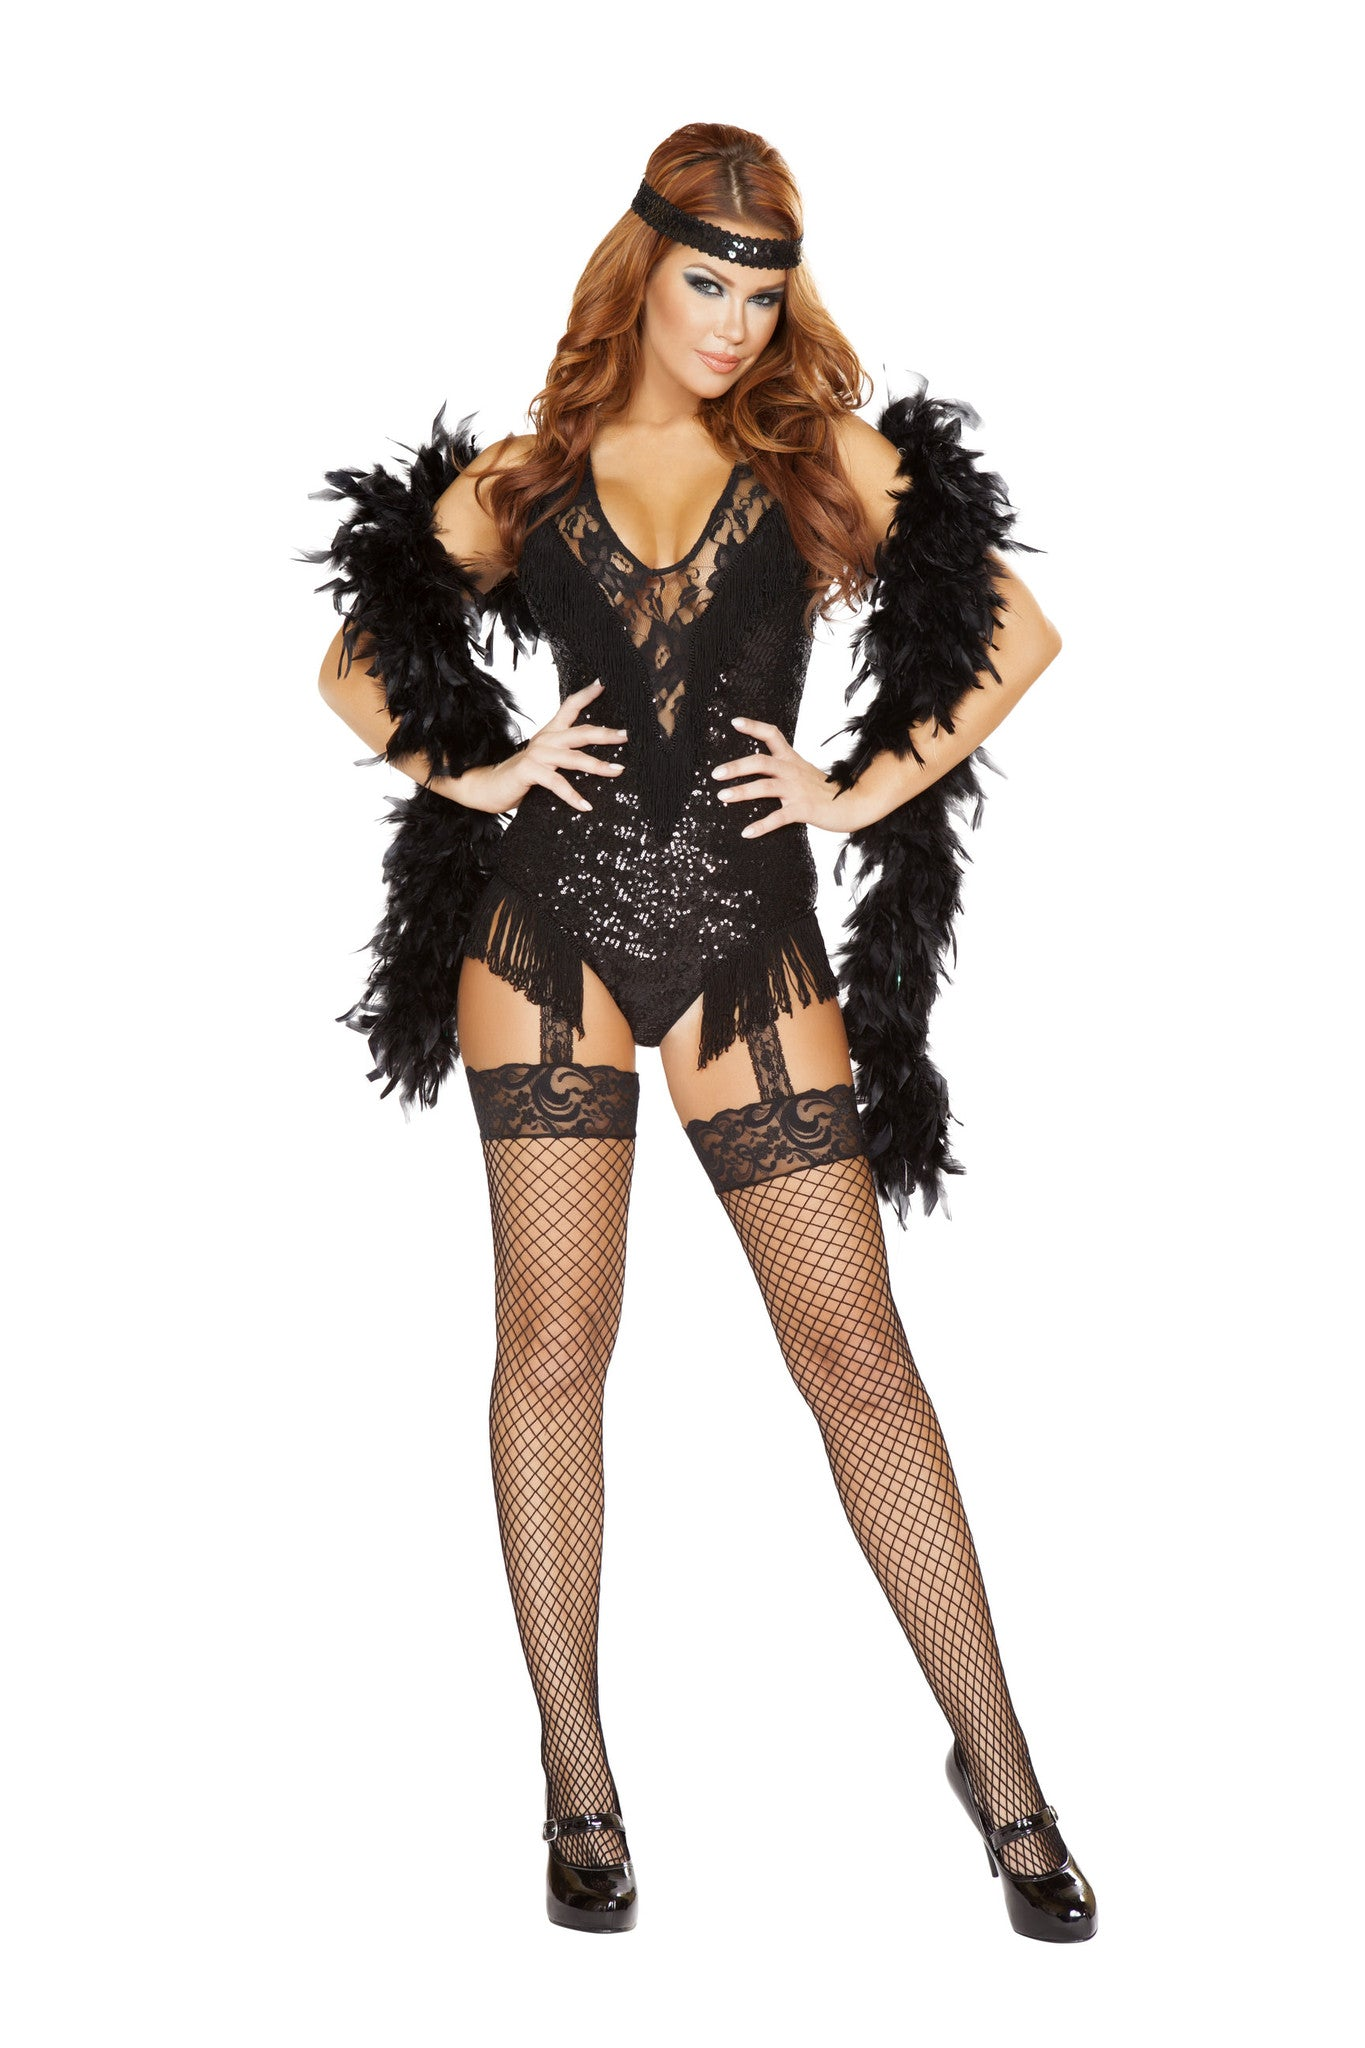 fad31a8acd 4748 - 2pc 1920 s Party Flapper